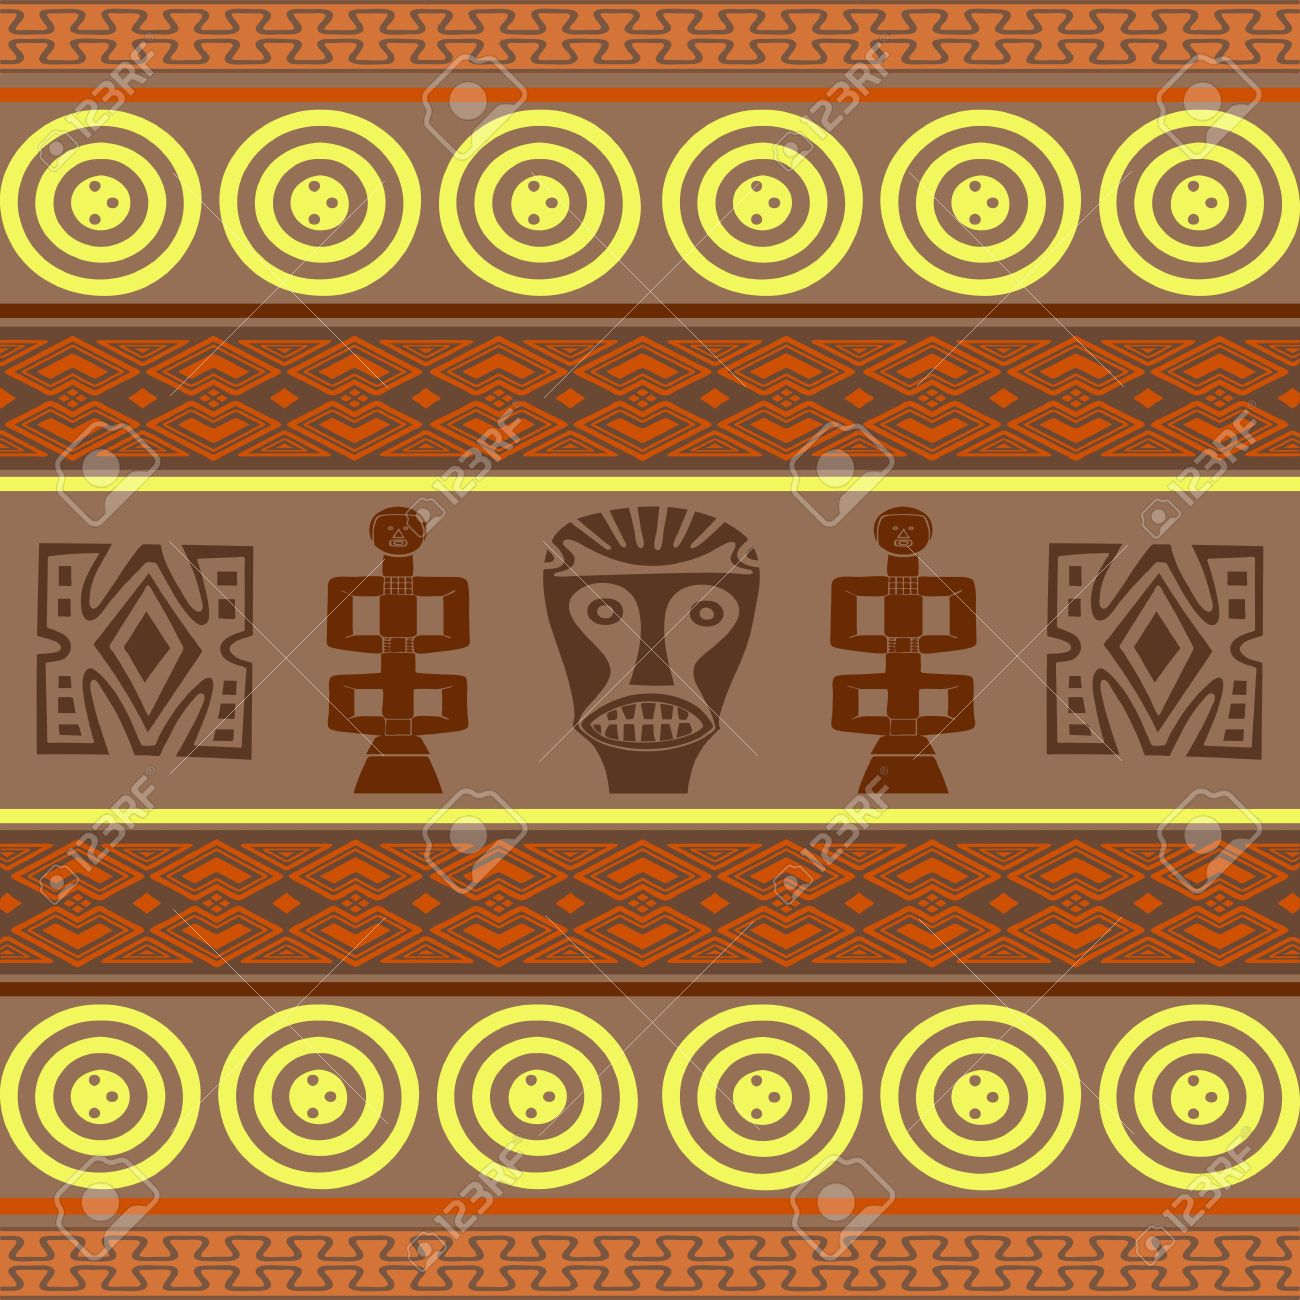 Wallpaper With African Design Elements Stock Photo Picture And